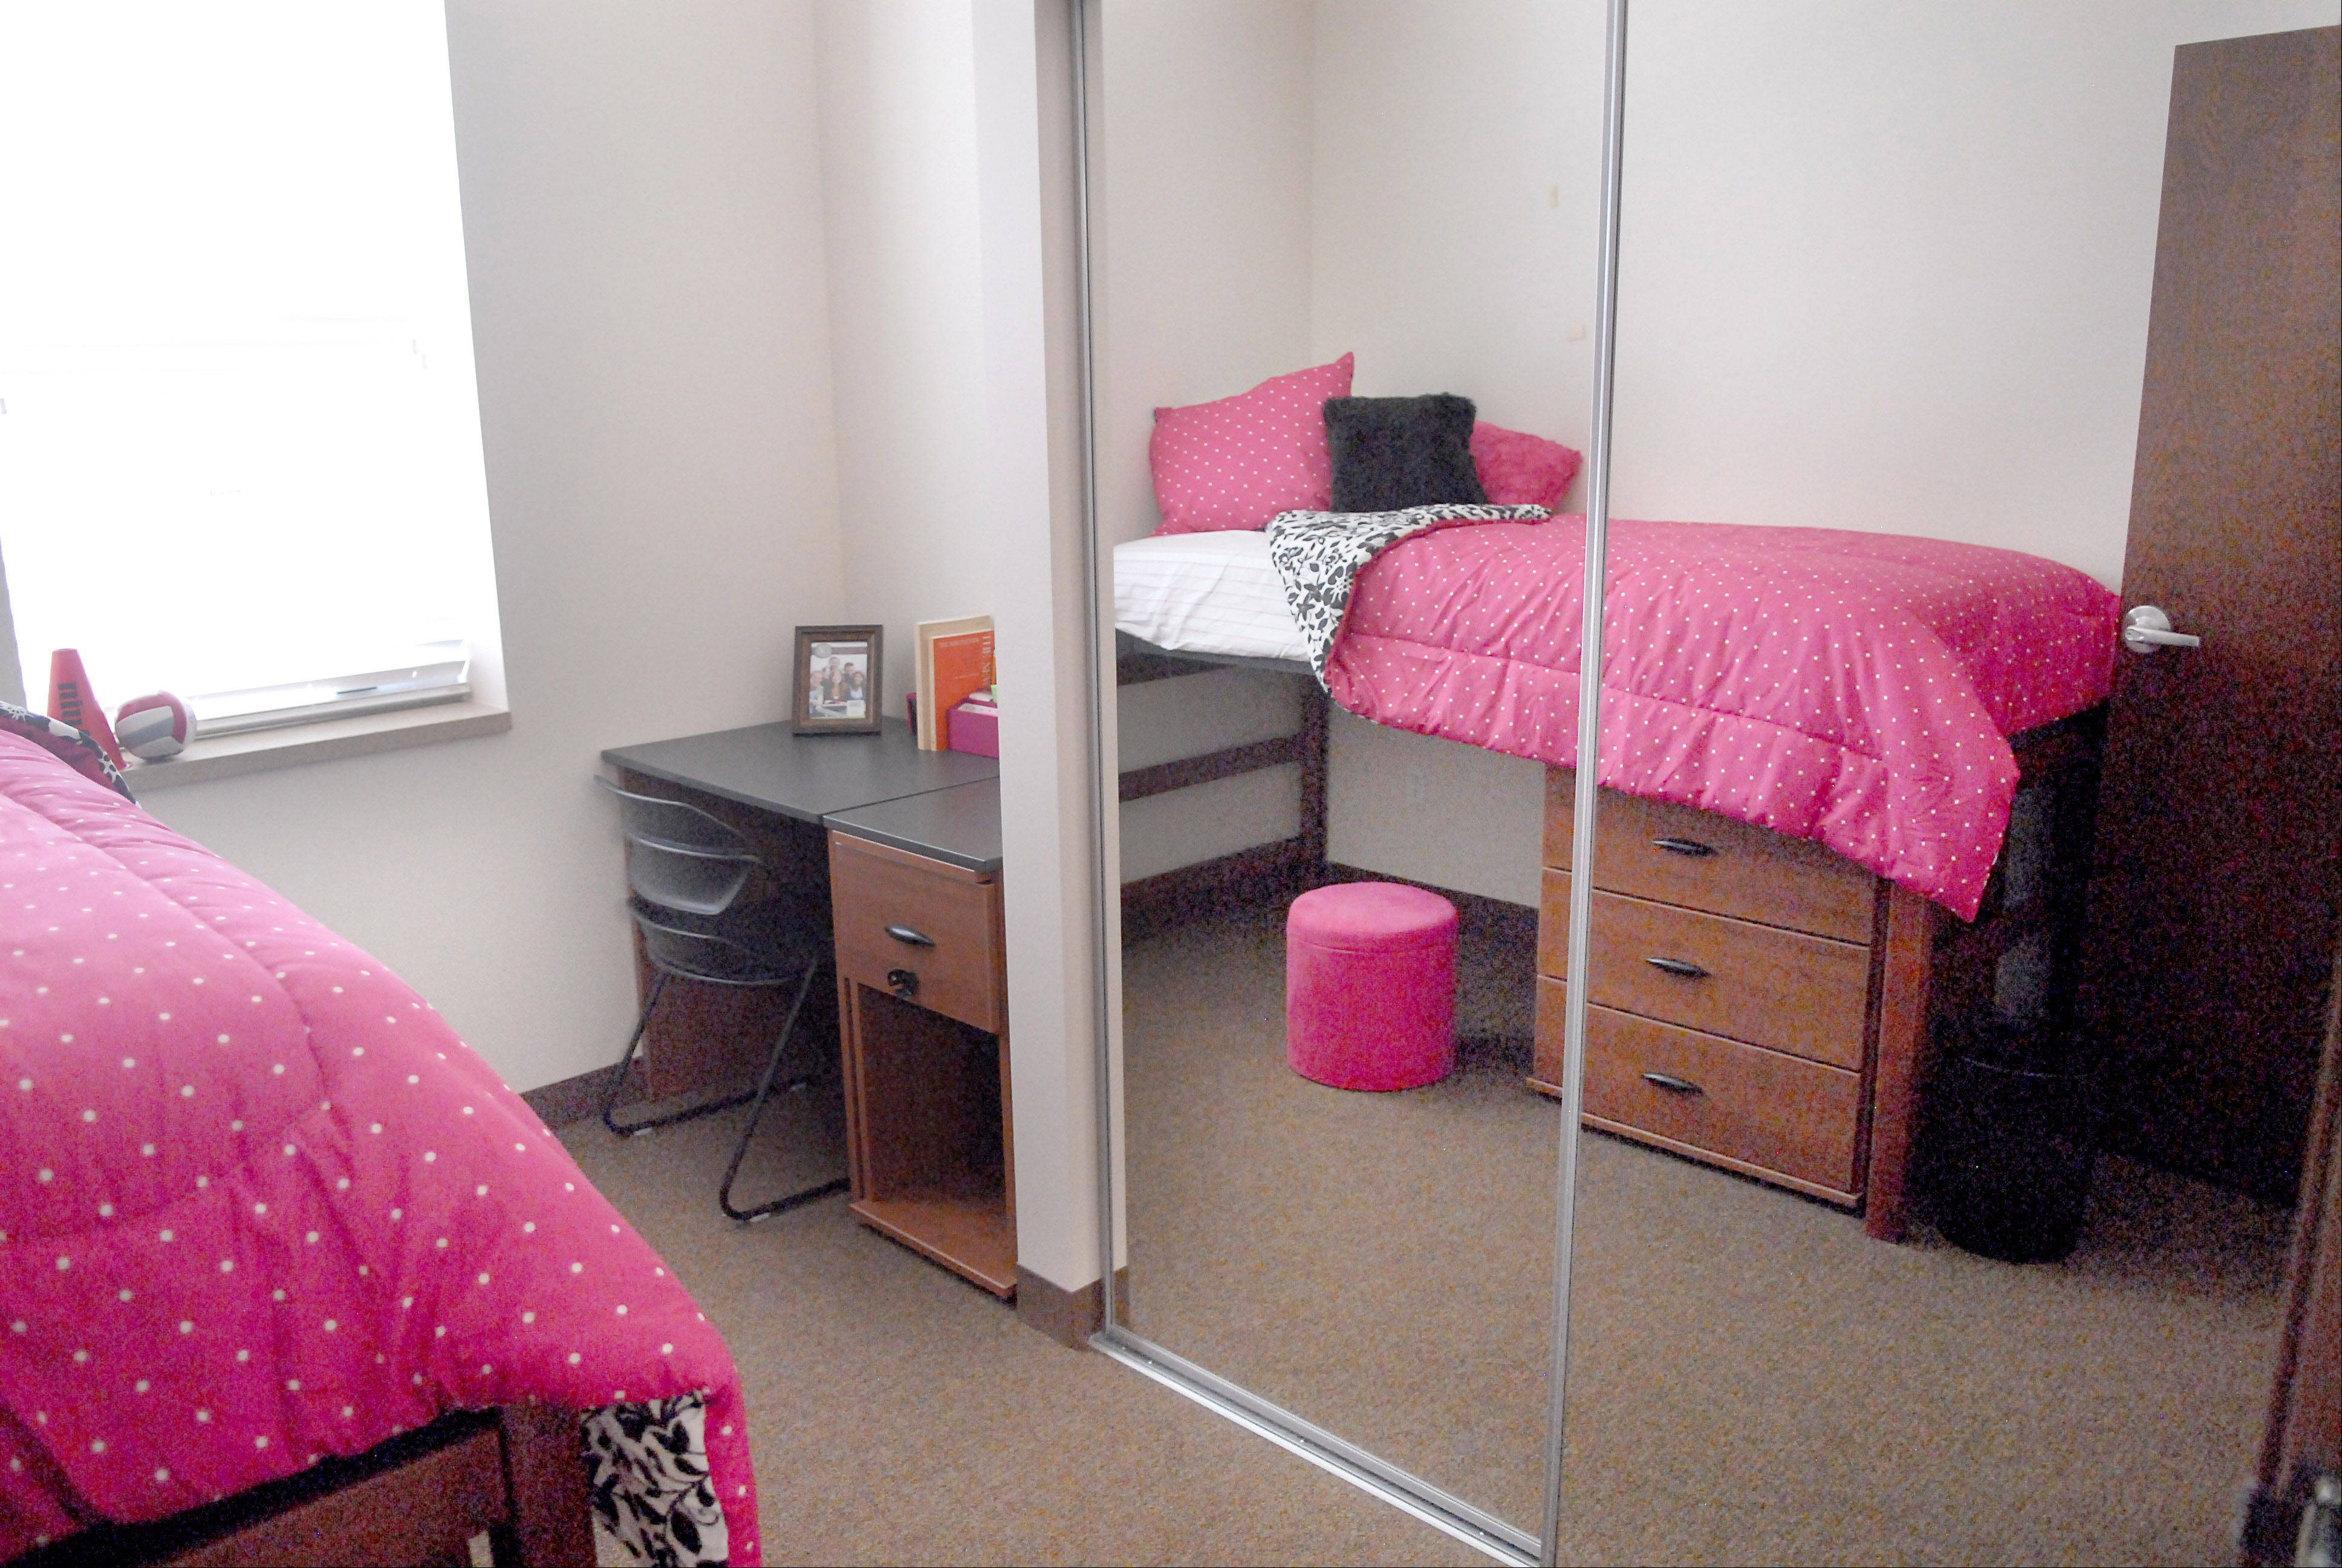 A dorm is pictured at New Residence Hall West at Northern Illinois University in DeKalb on Thursday, August 23. Students have their own bedrooms and share a bathroom with one other person.